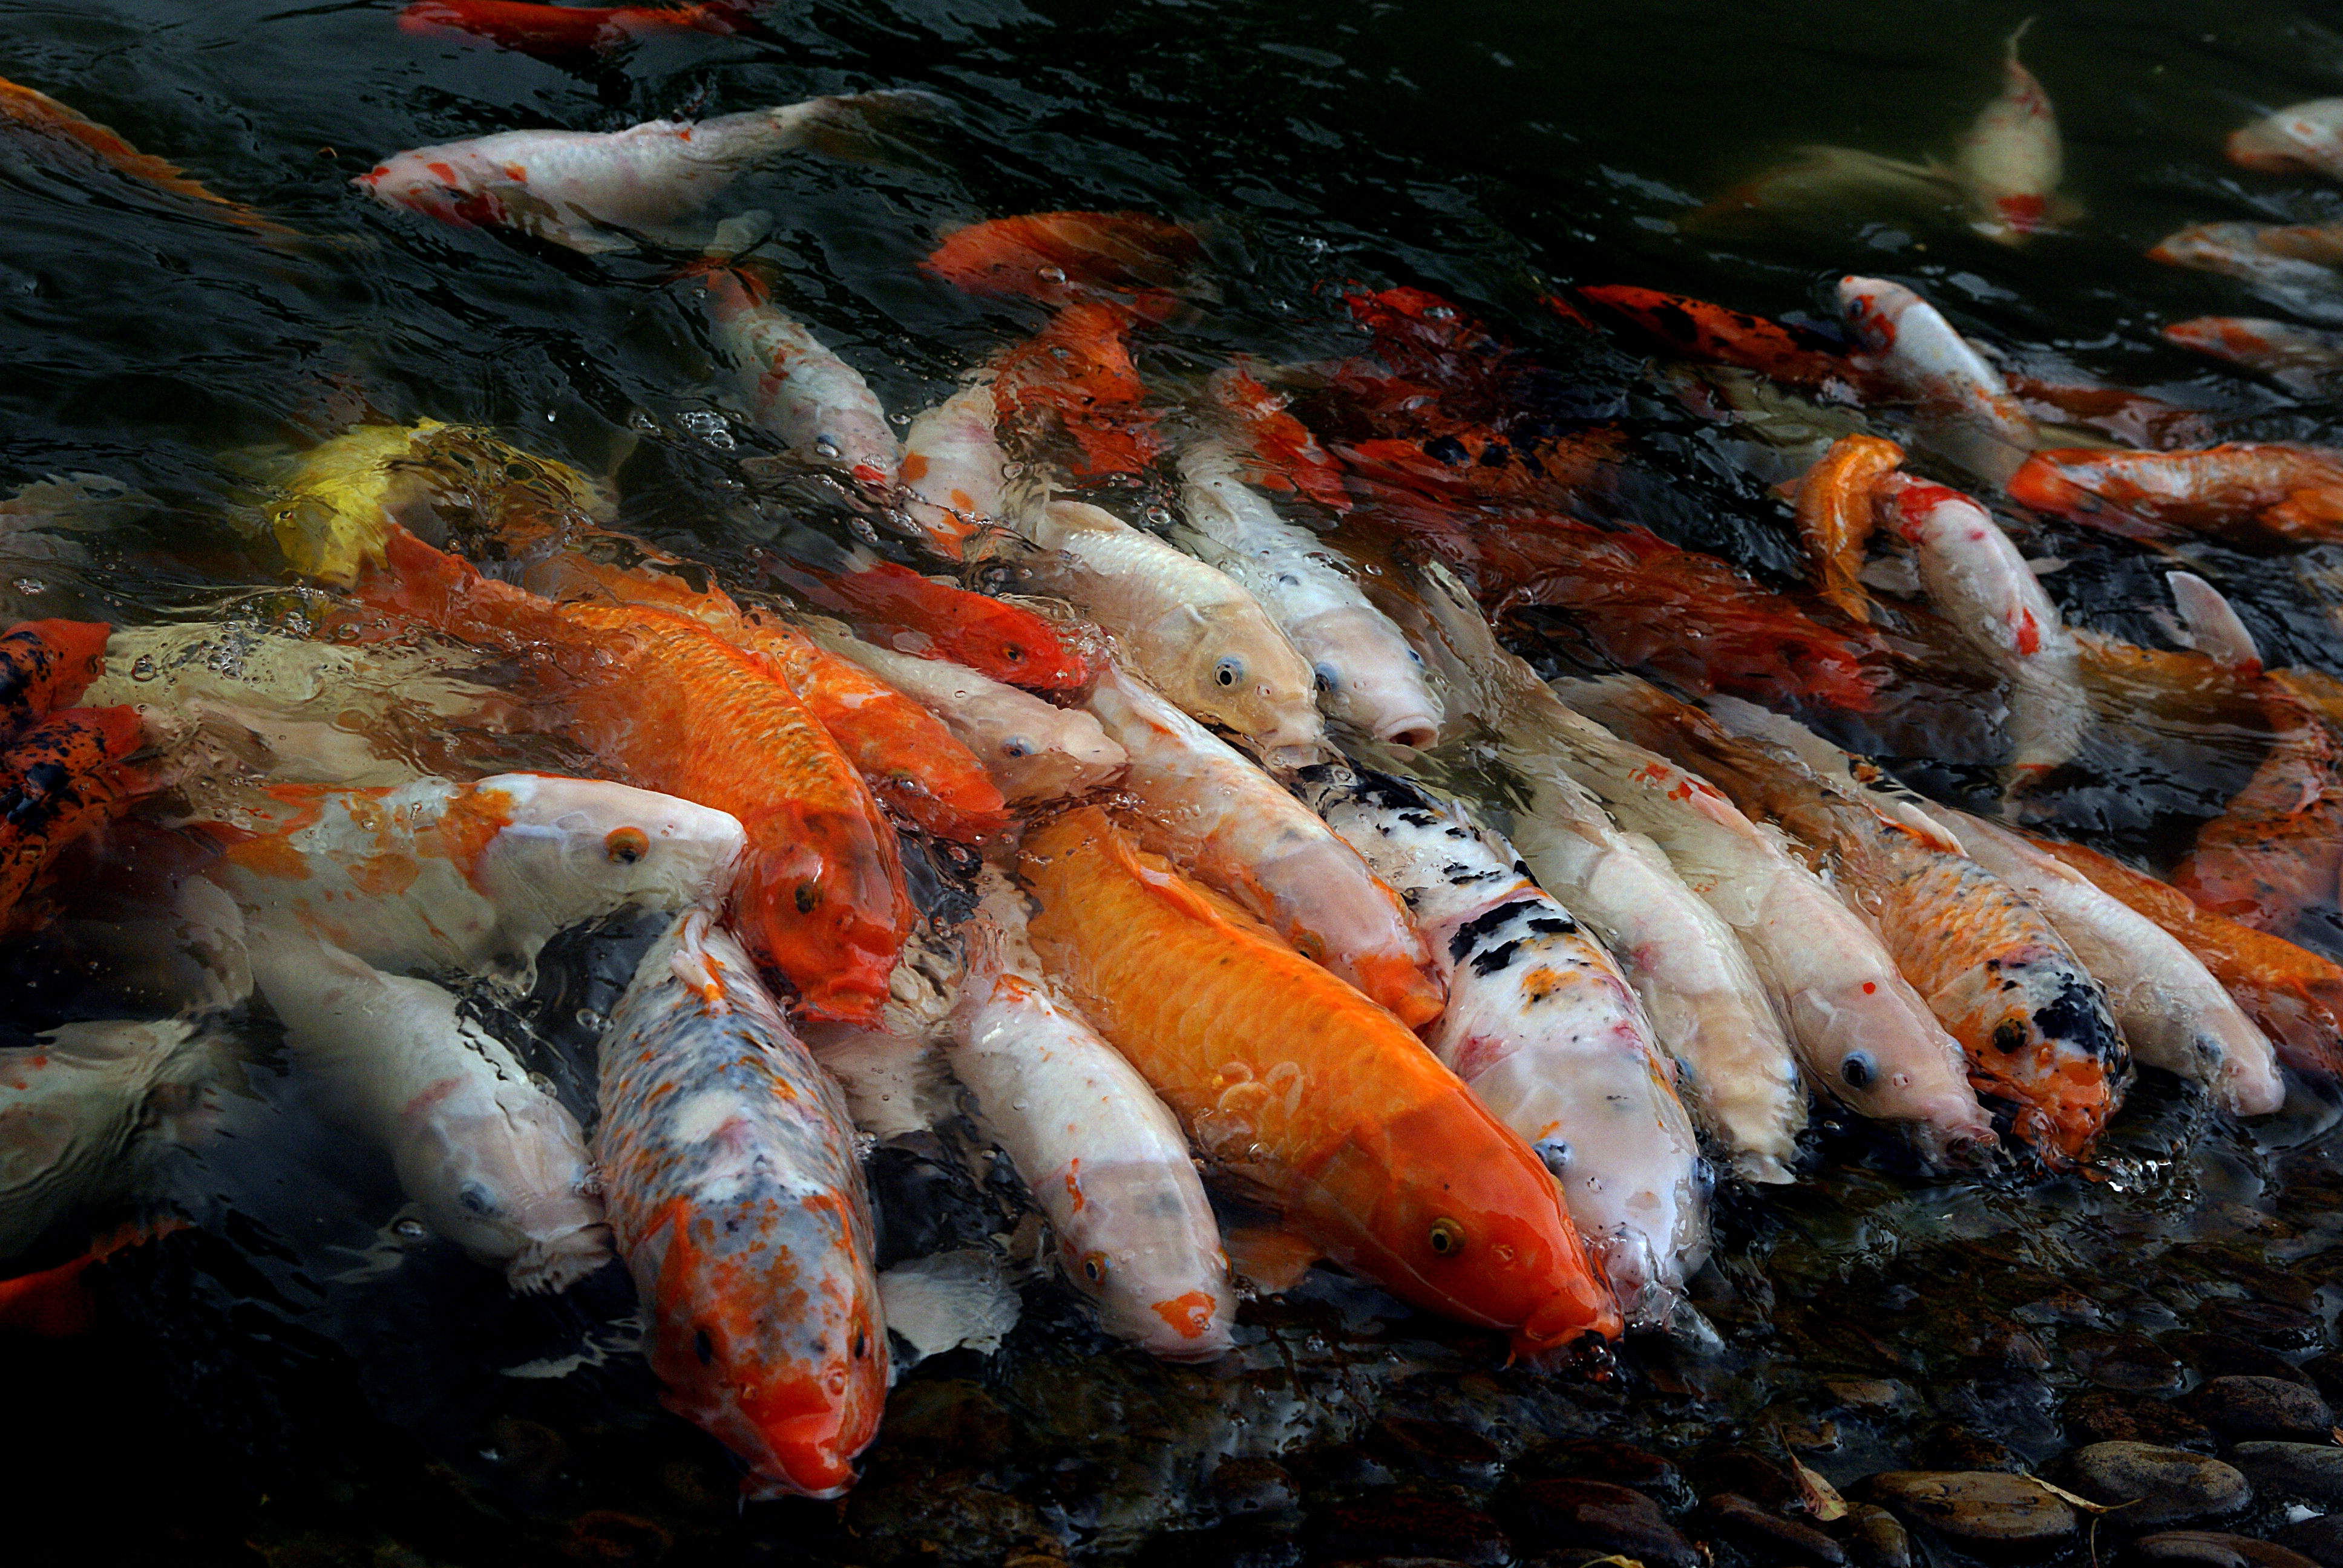 Koi carp. (Cyprinus carpio), Animal, Colour, Fish, Food, HQ Photo